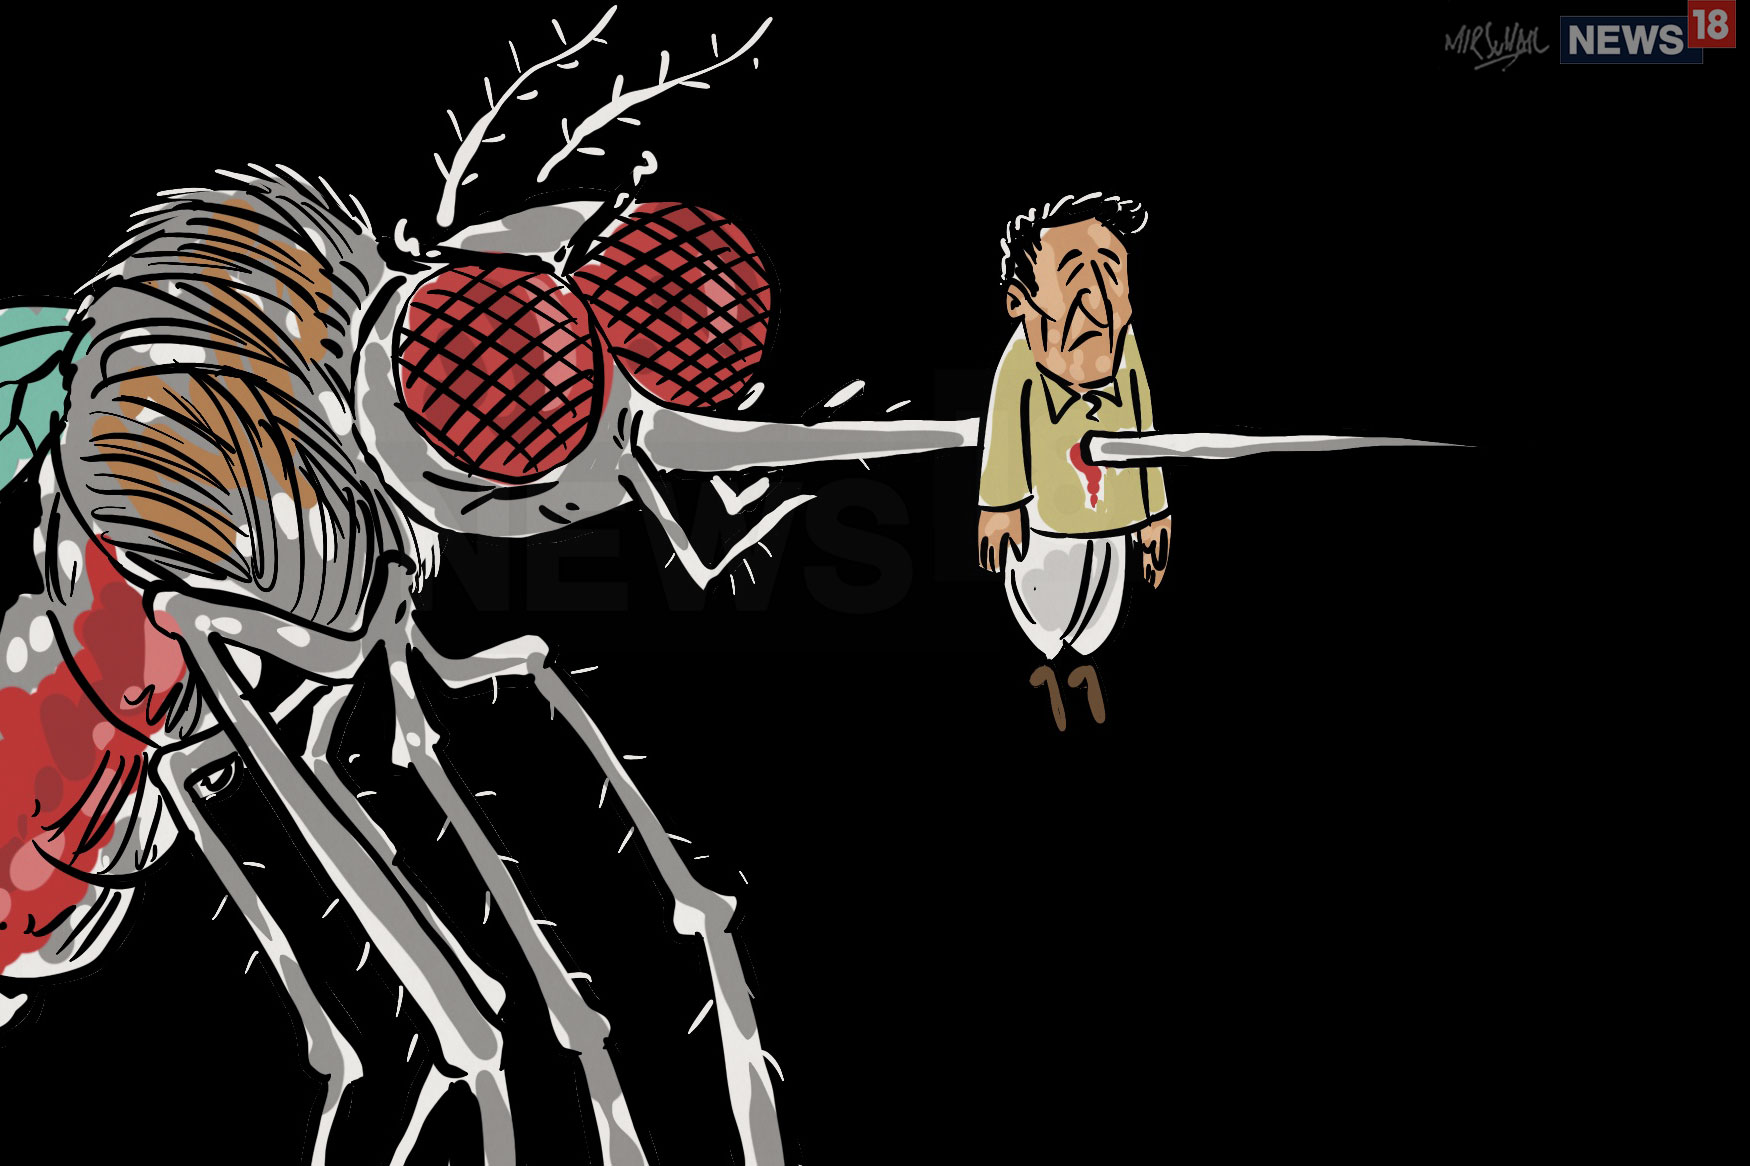 Dengue Takes 6 Lives in Karnataka, 10, 524 Cases Reported